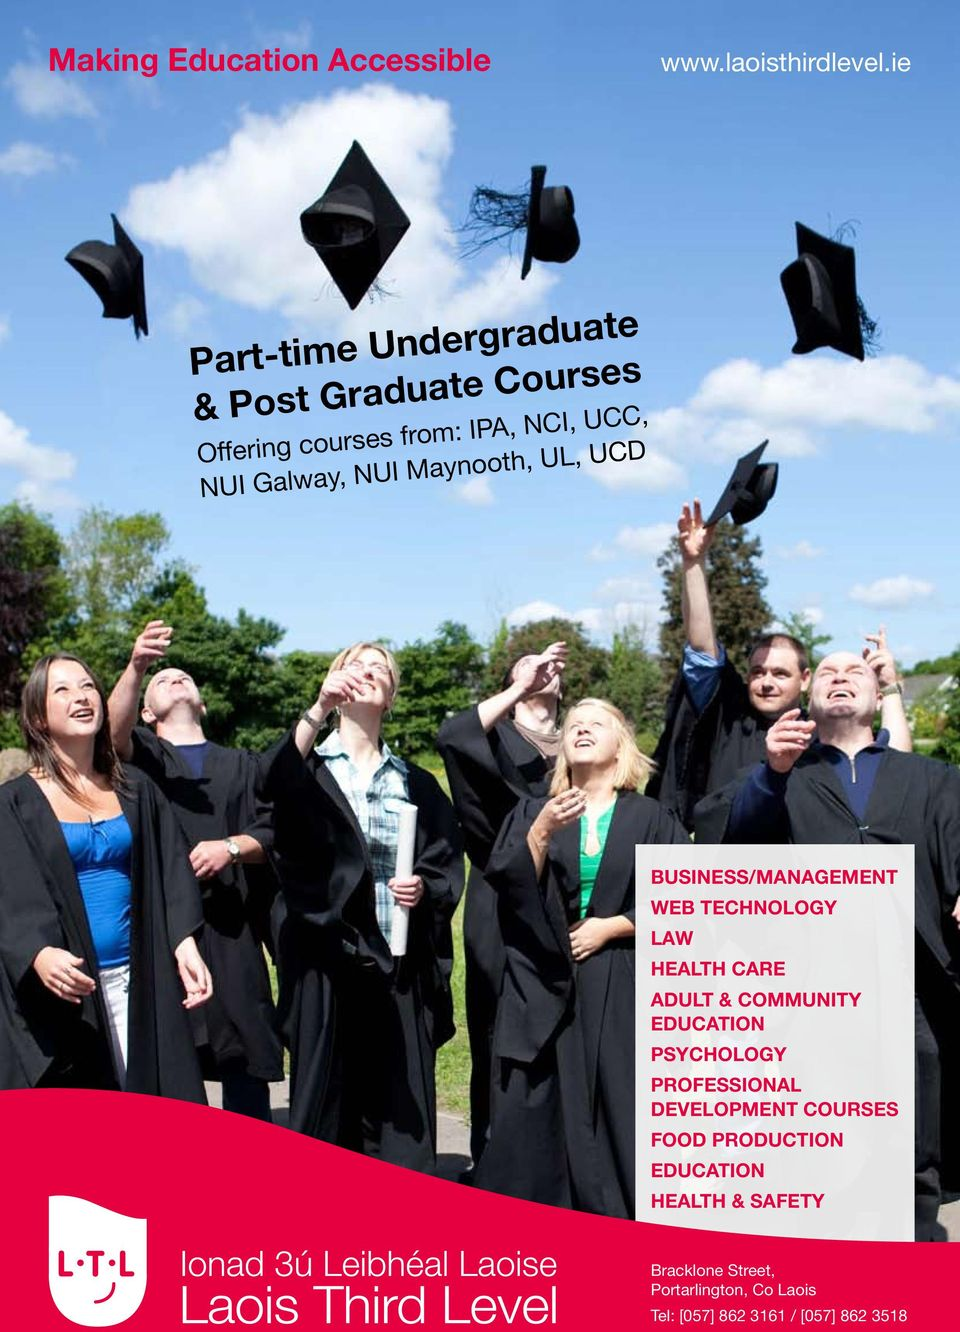 NUI Maynooth, UL, UCD Business/Management Web Technology Law Health Care Adult & Community Education